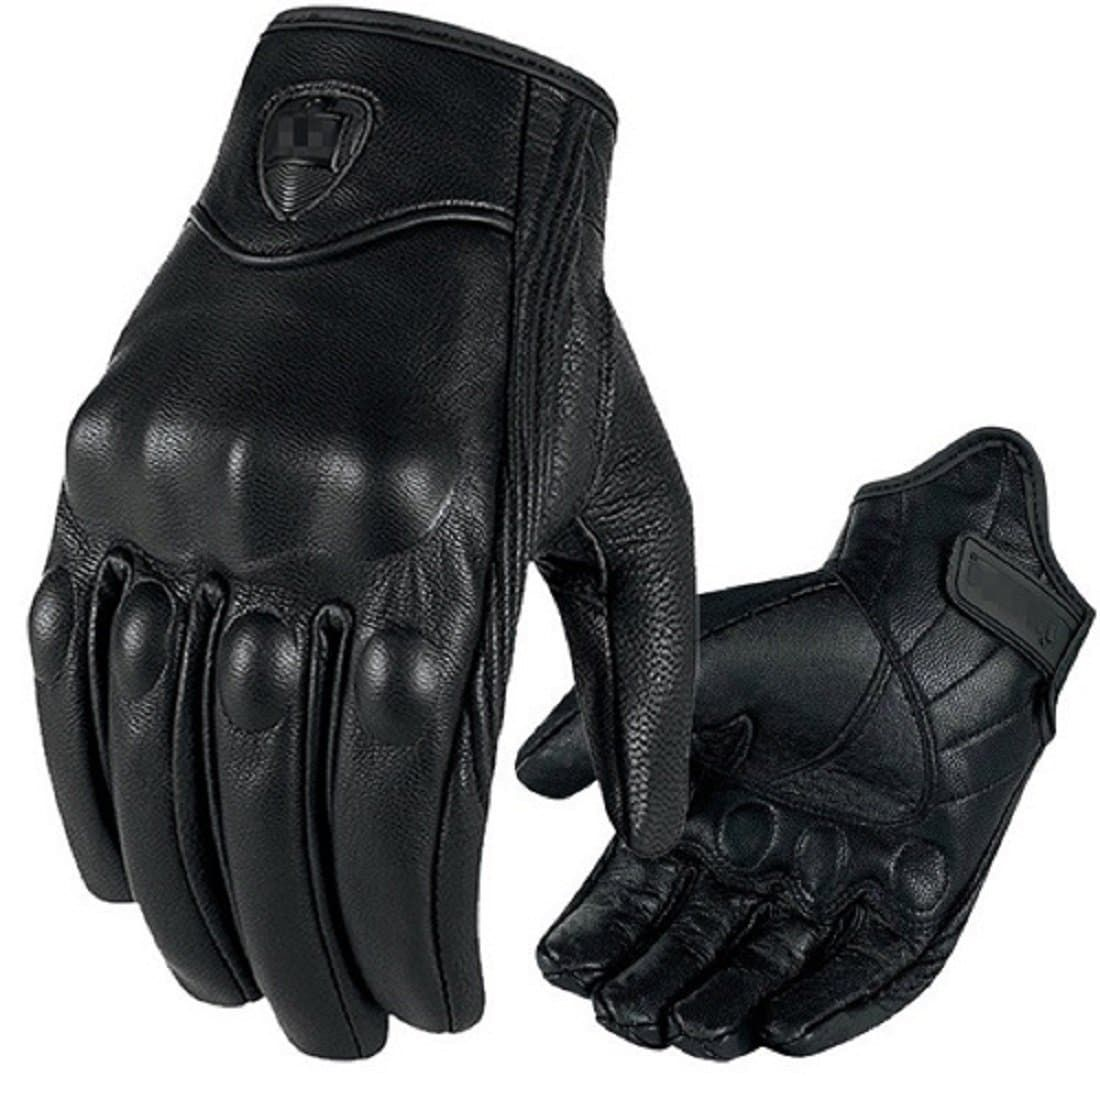 Icon Tarmac Gloves Touchscreen Motorcycle Street Riding Winter Waterproof